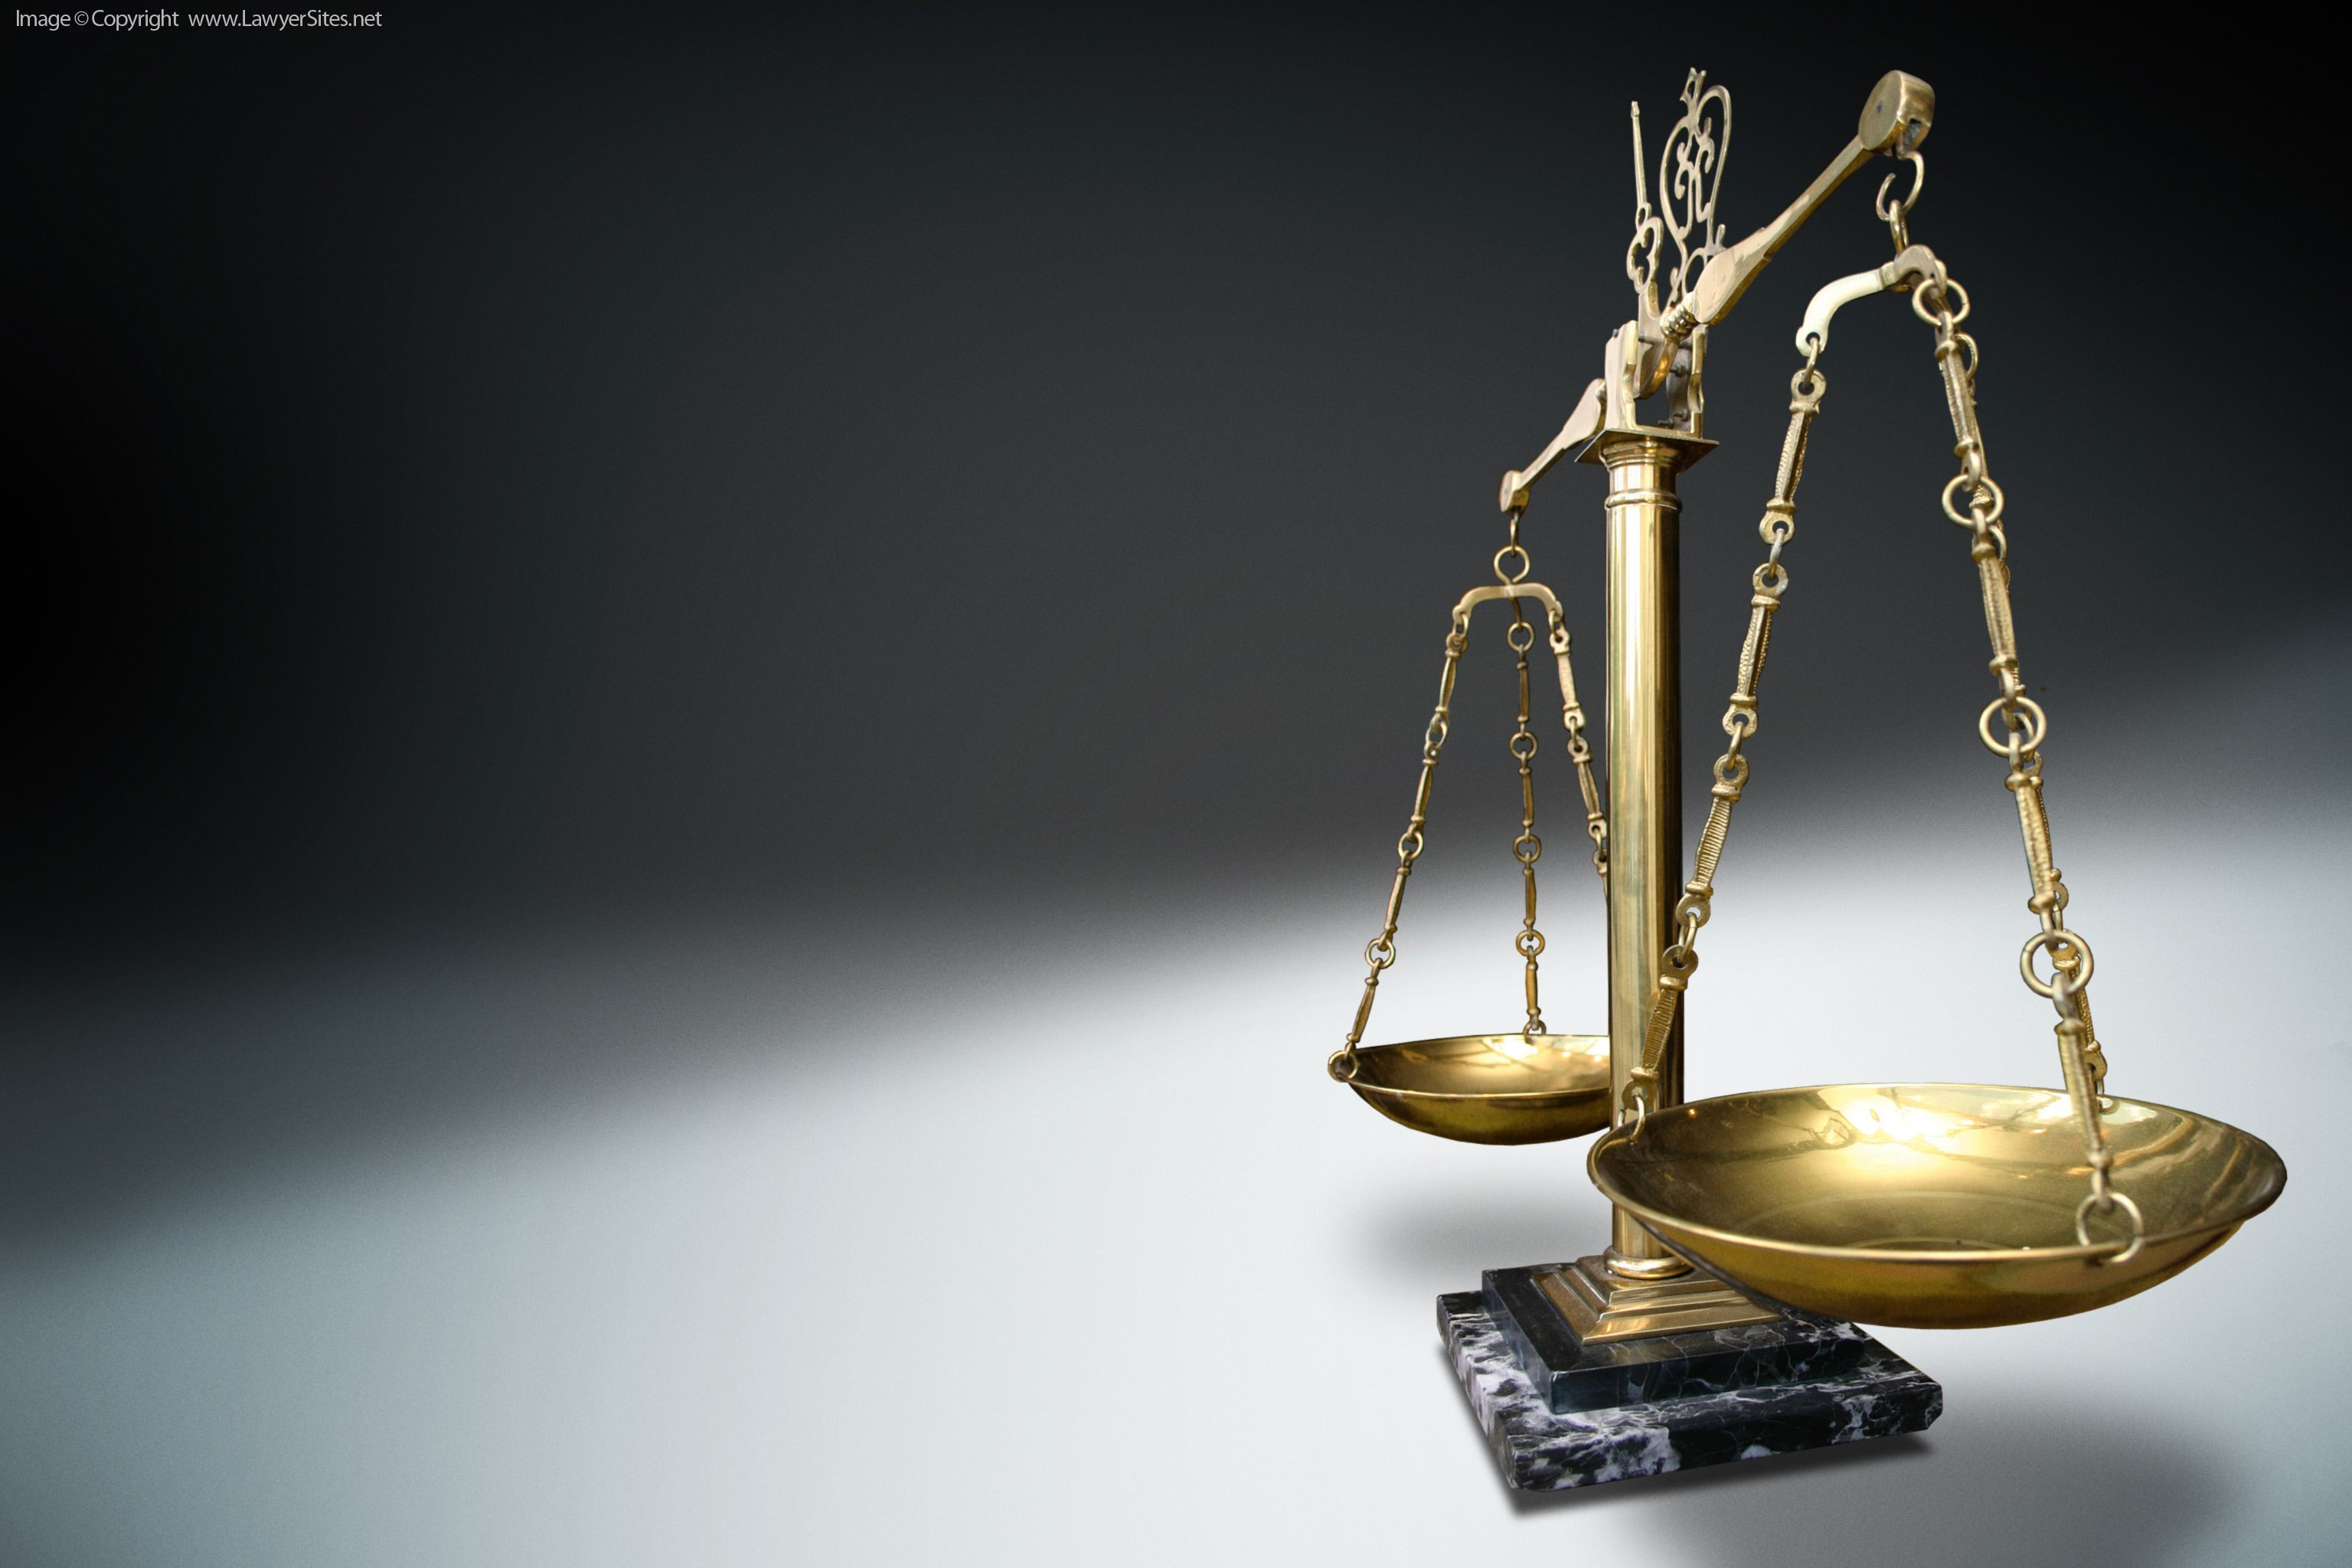 Stock Photo Scales Of Justice Royalty Stock Photography 3072x2048